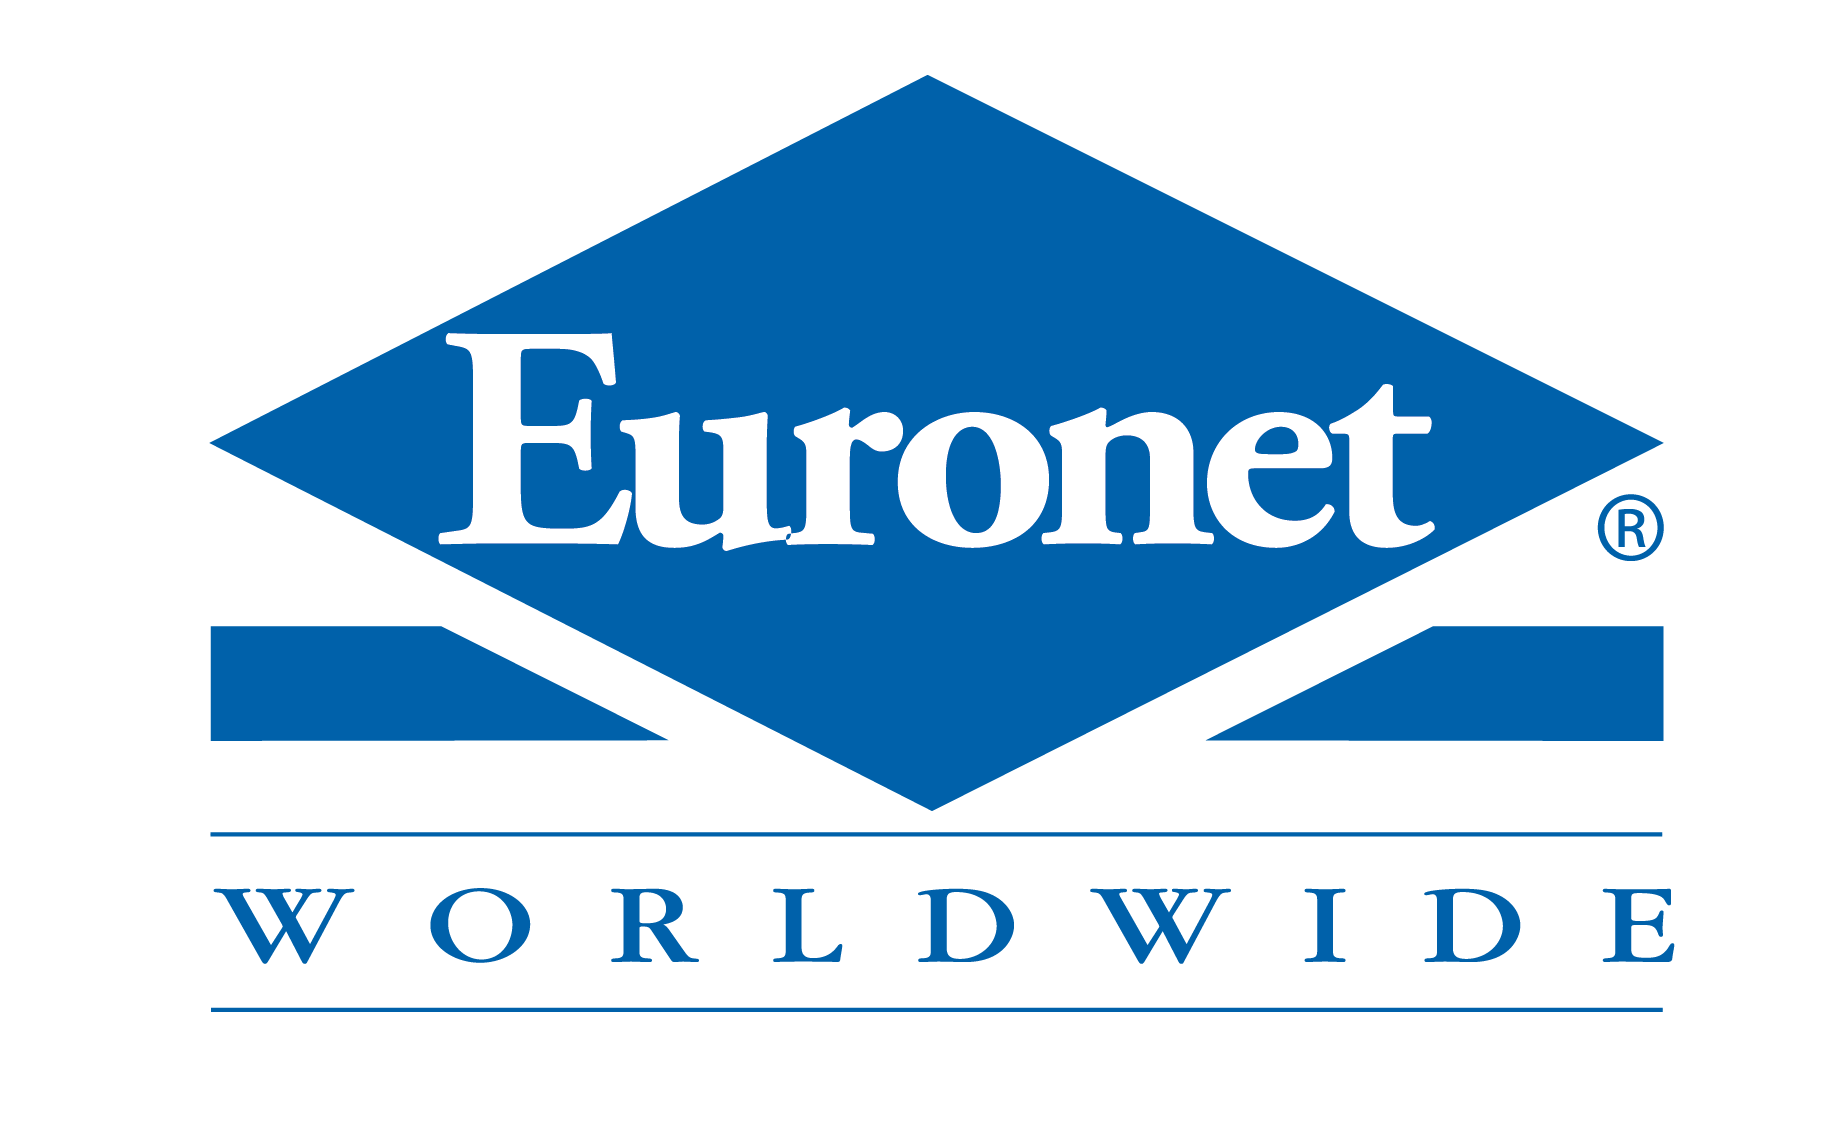 Euronet_logo_CMYK_use this one-01.png